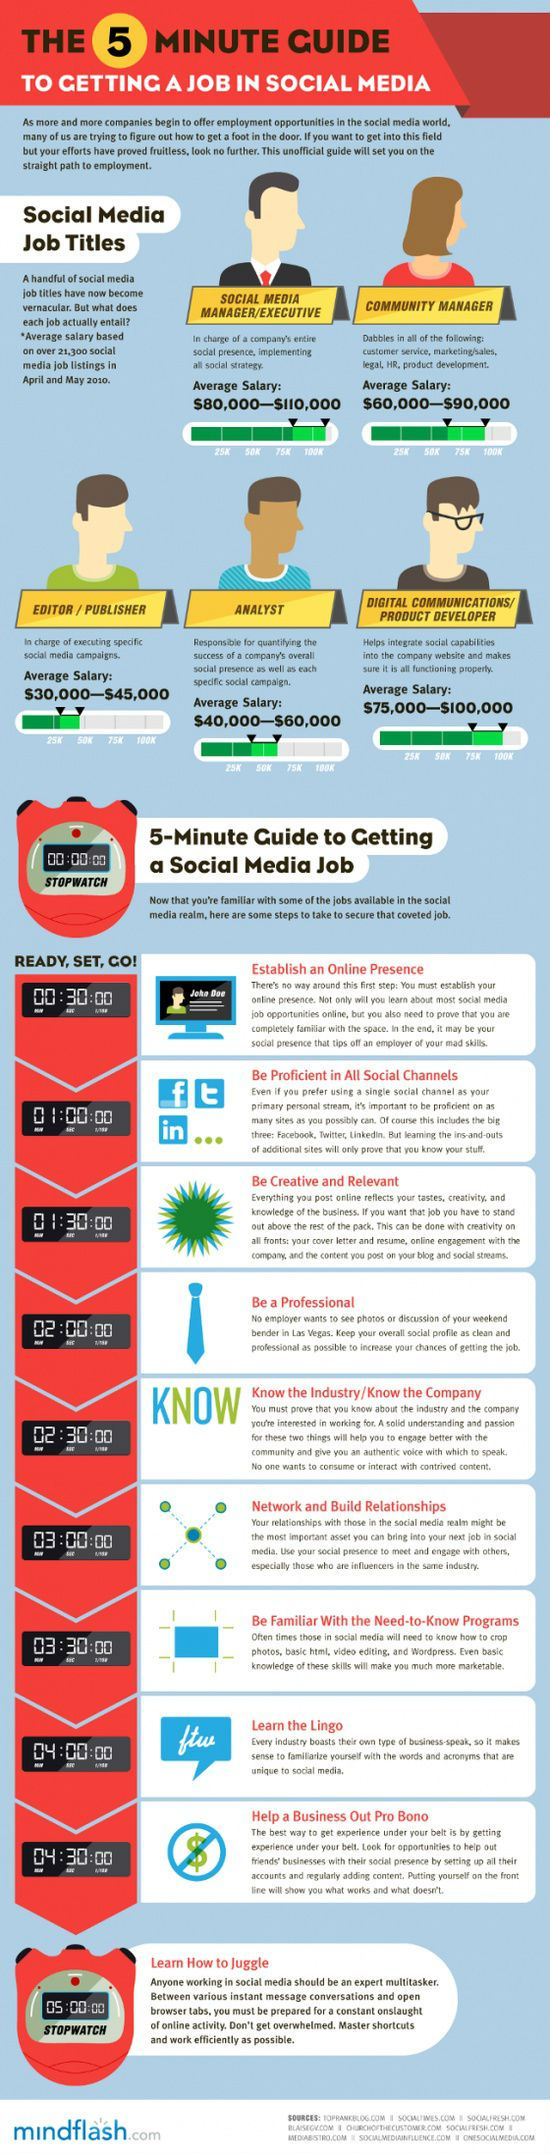 How To Get A Social Media Job In 5 Minutes